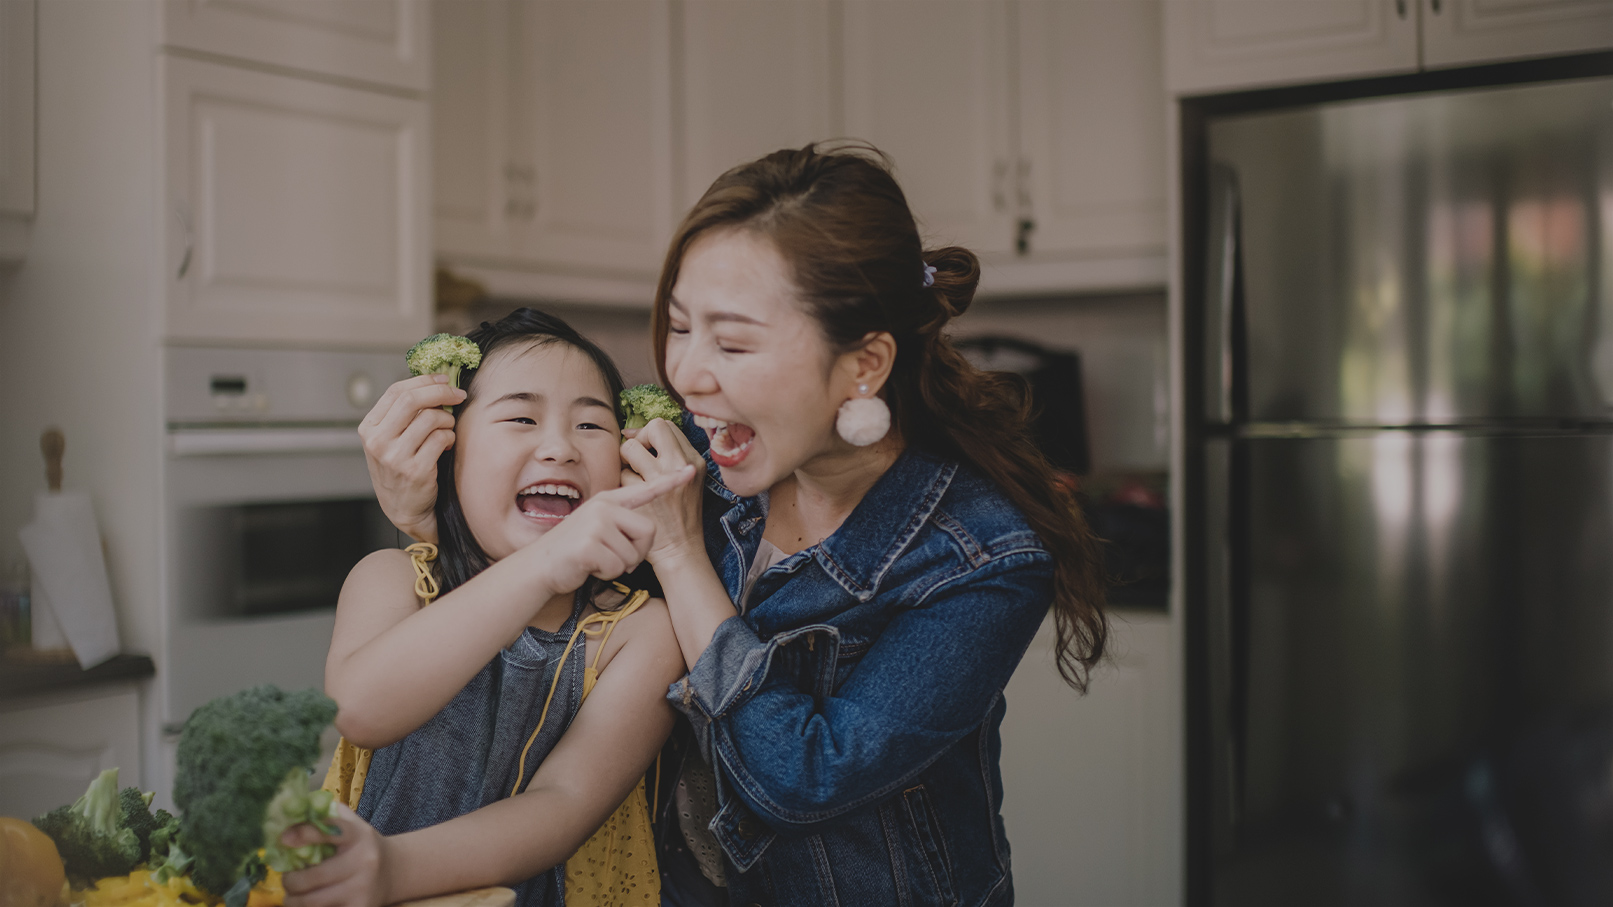 Mom and daughter cooking broccoli